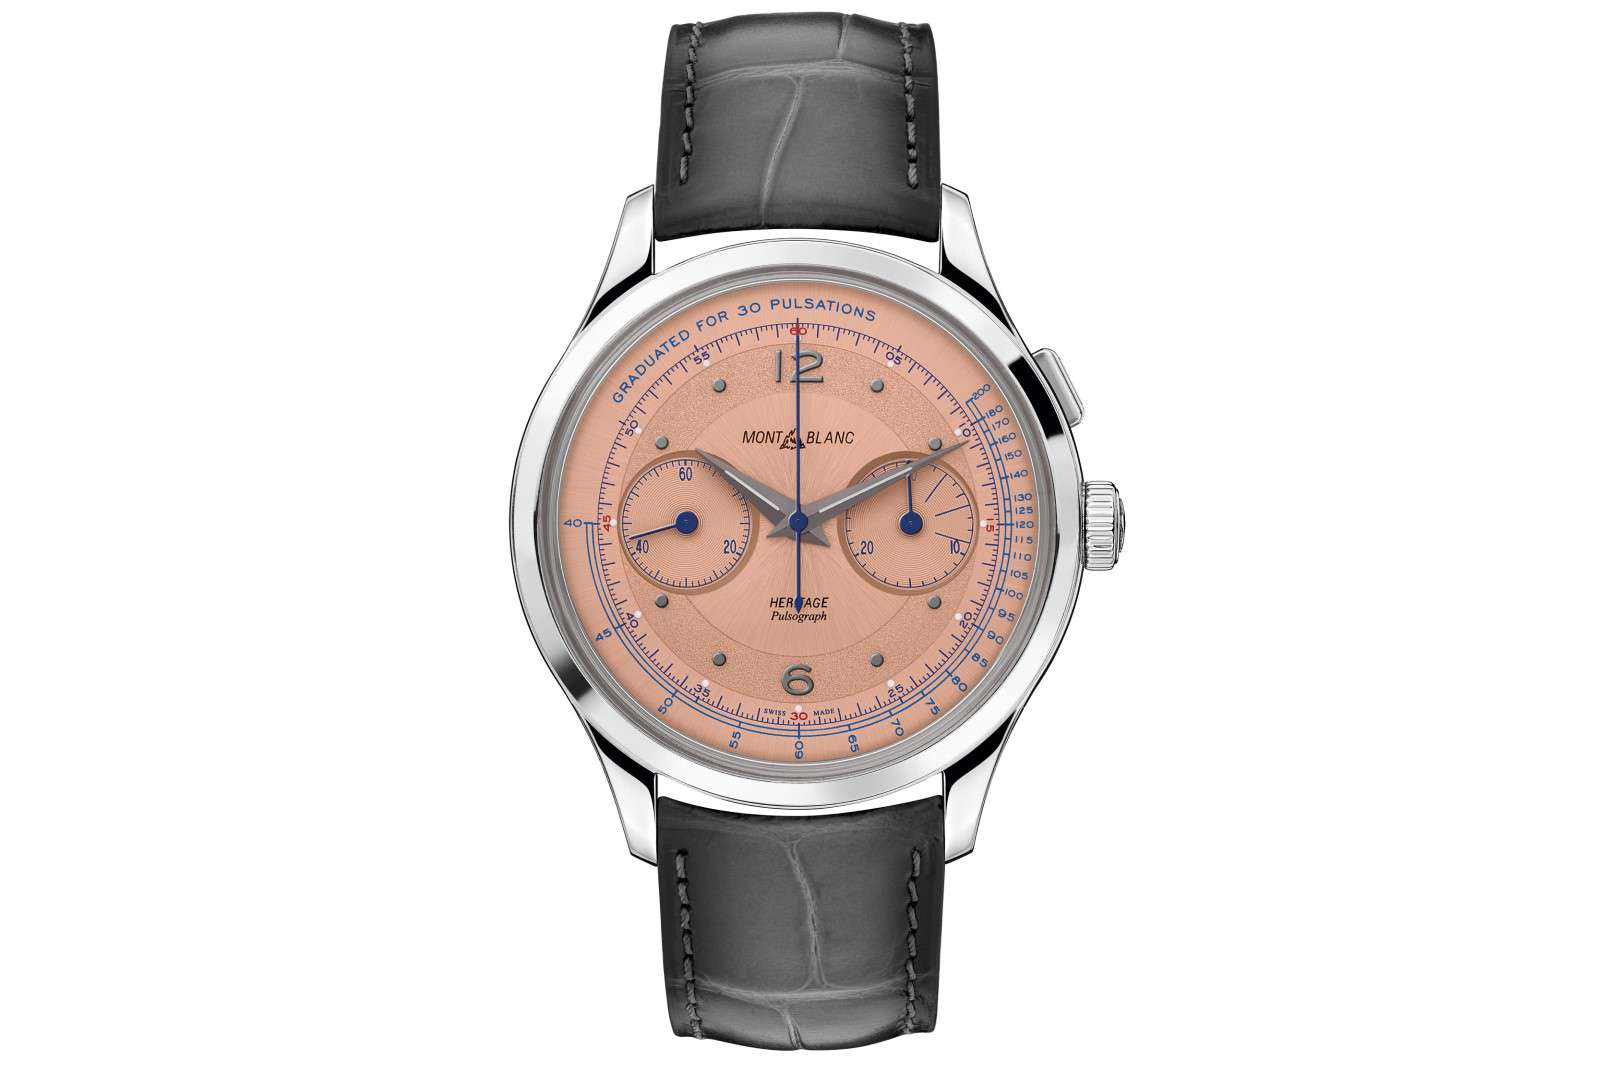 Montblanc Heritage Pulsograph Limited Edition 100 - SIHH 2019